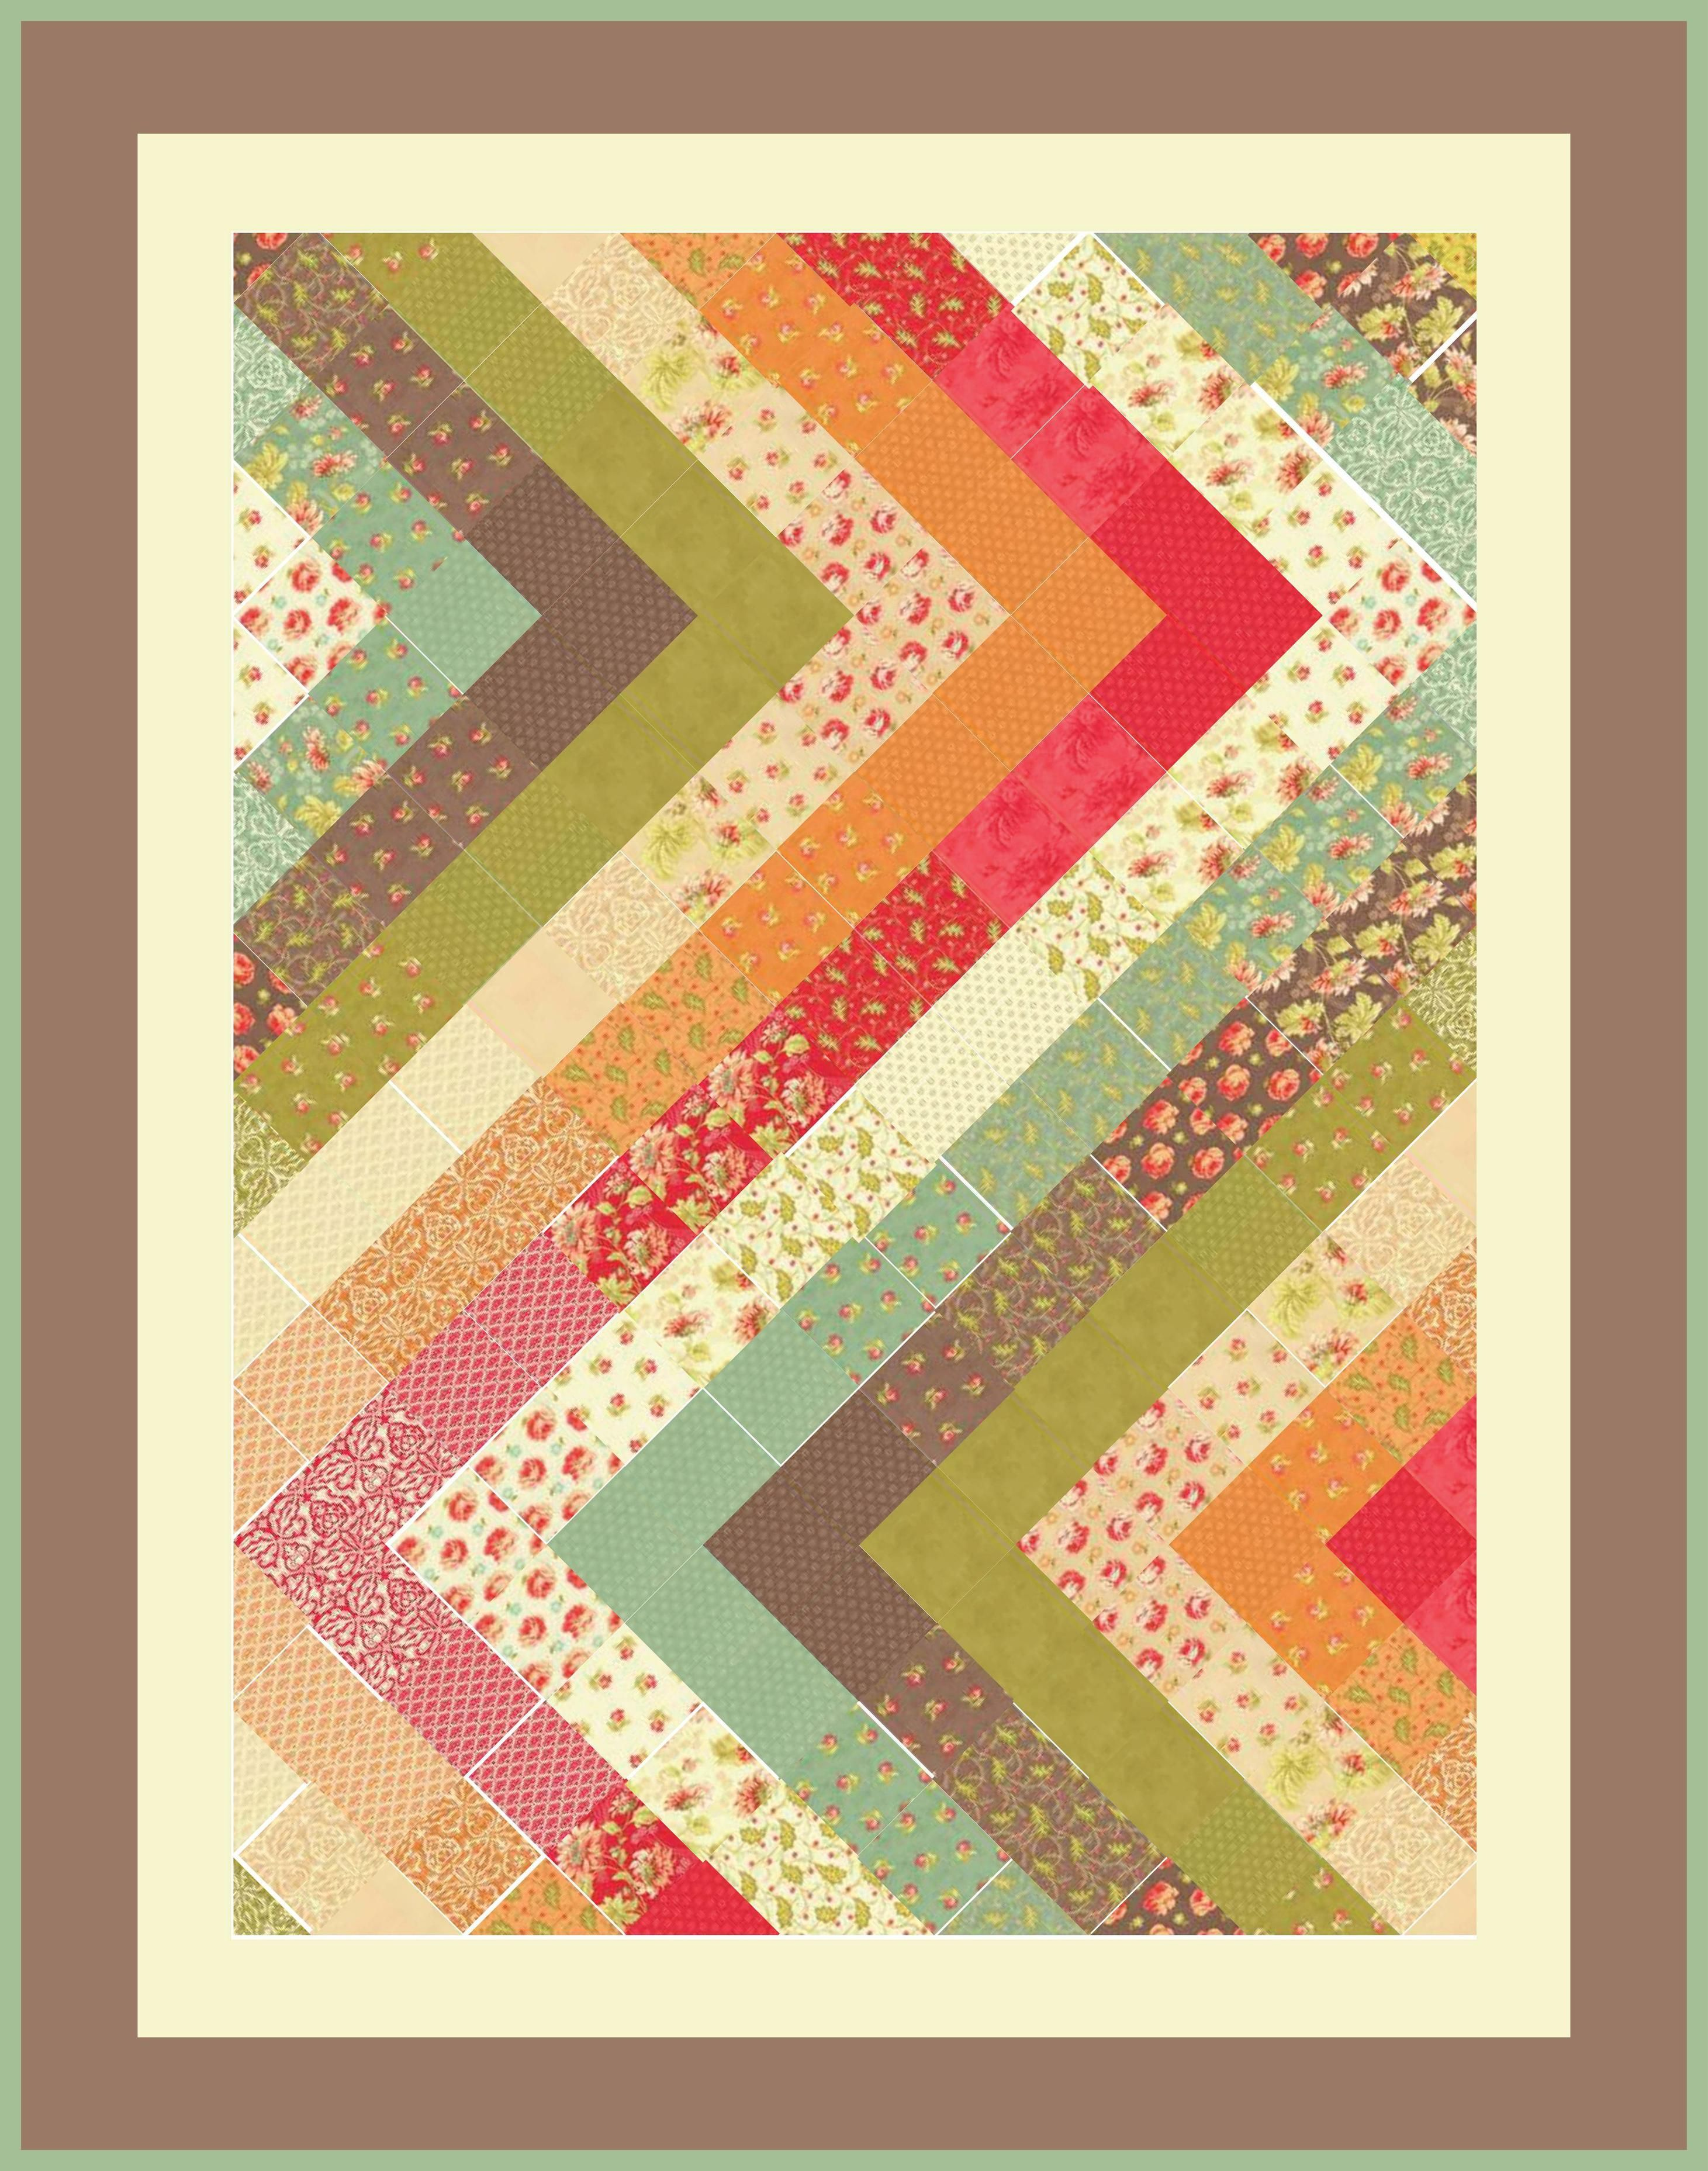 zigzag charms squares with just 2 triangles at the zigs from IMGUR ...